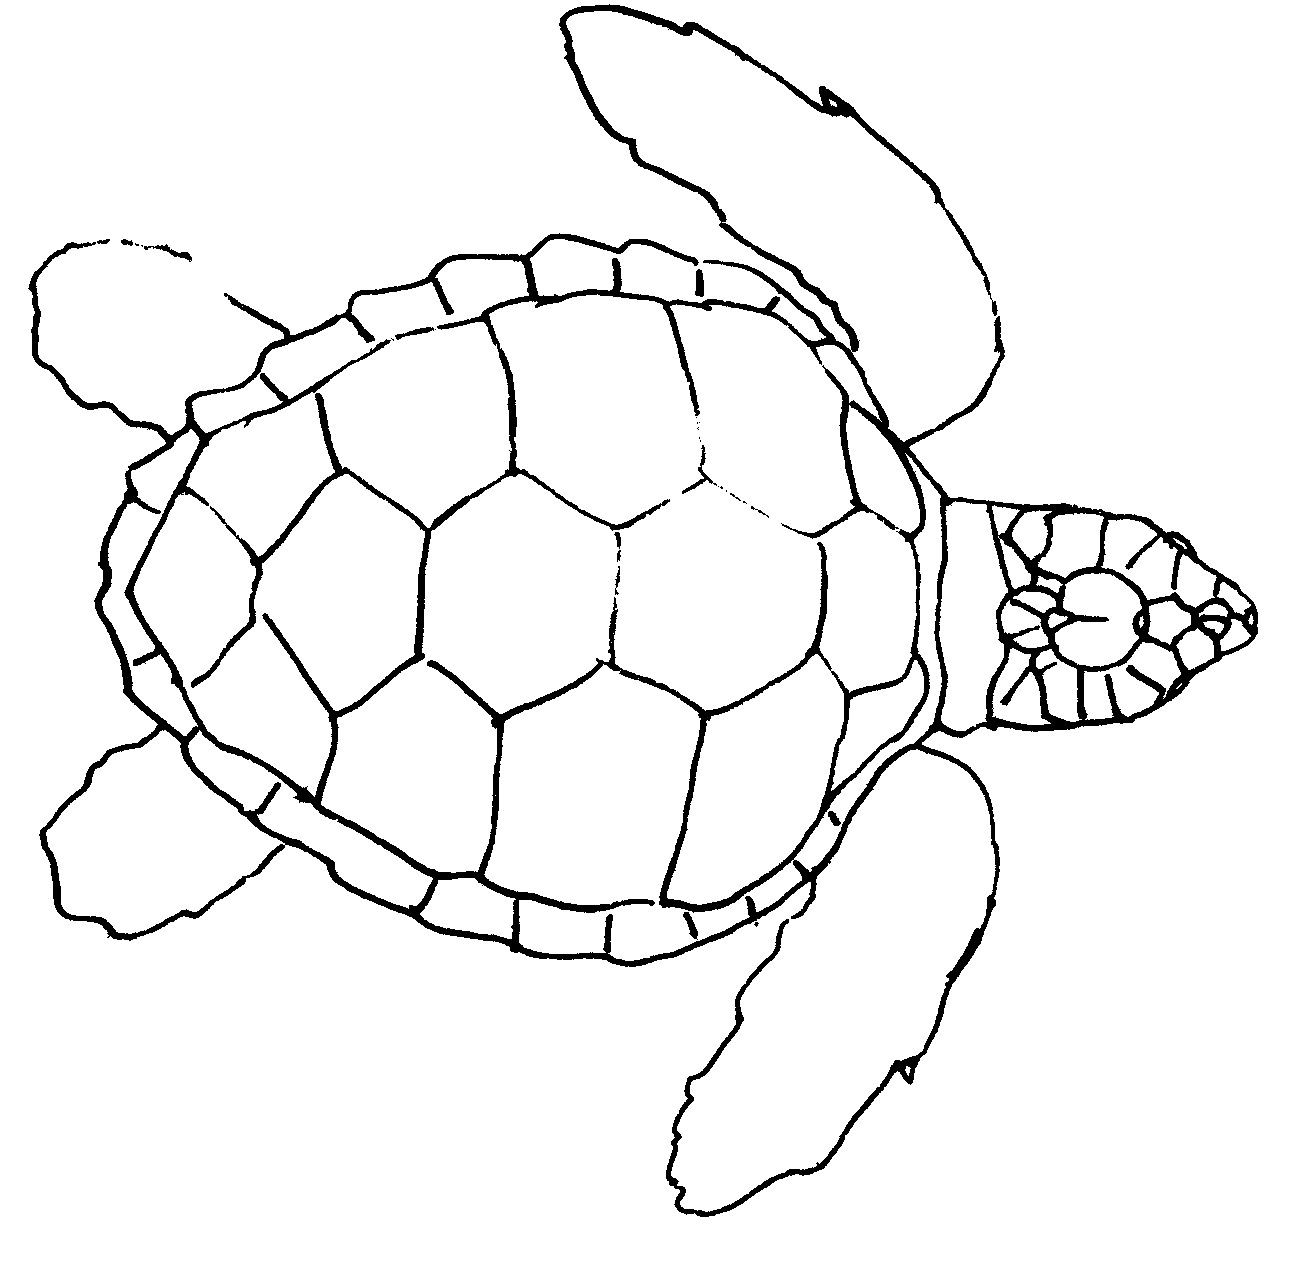 Turtle Outline